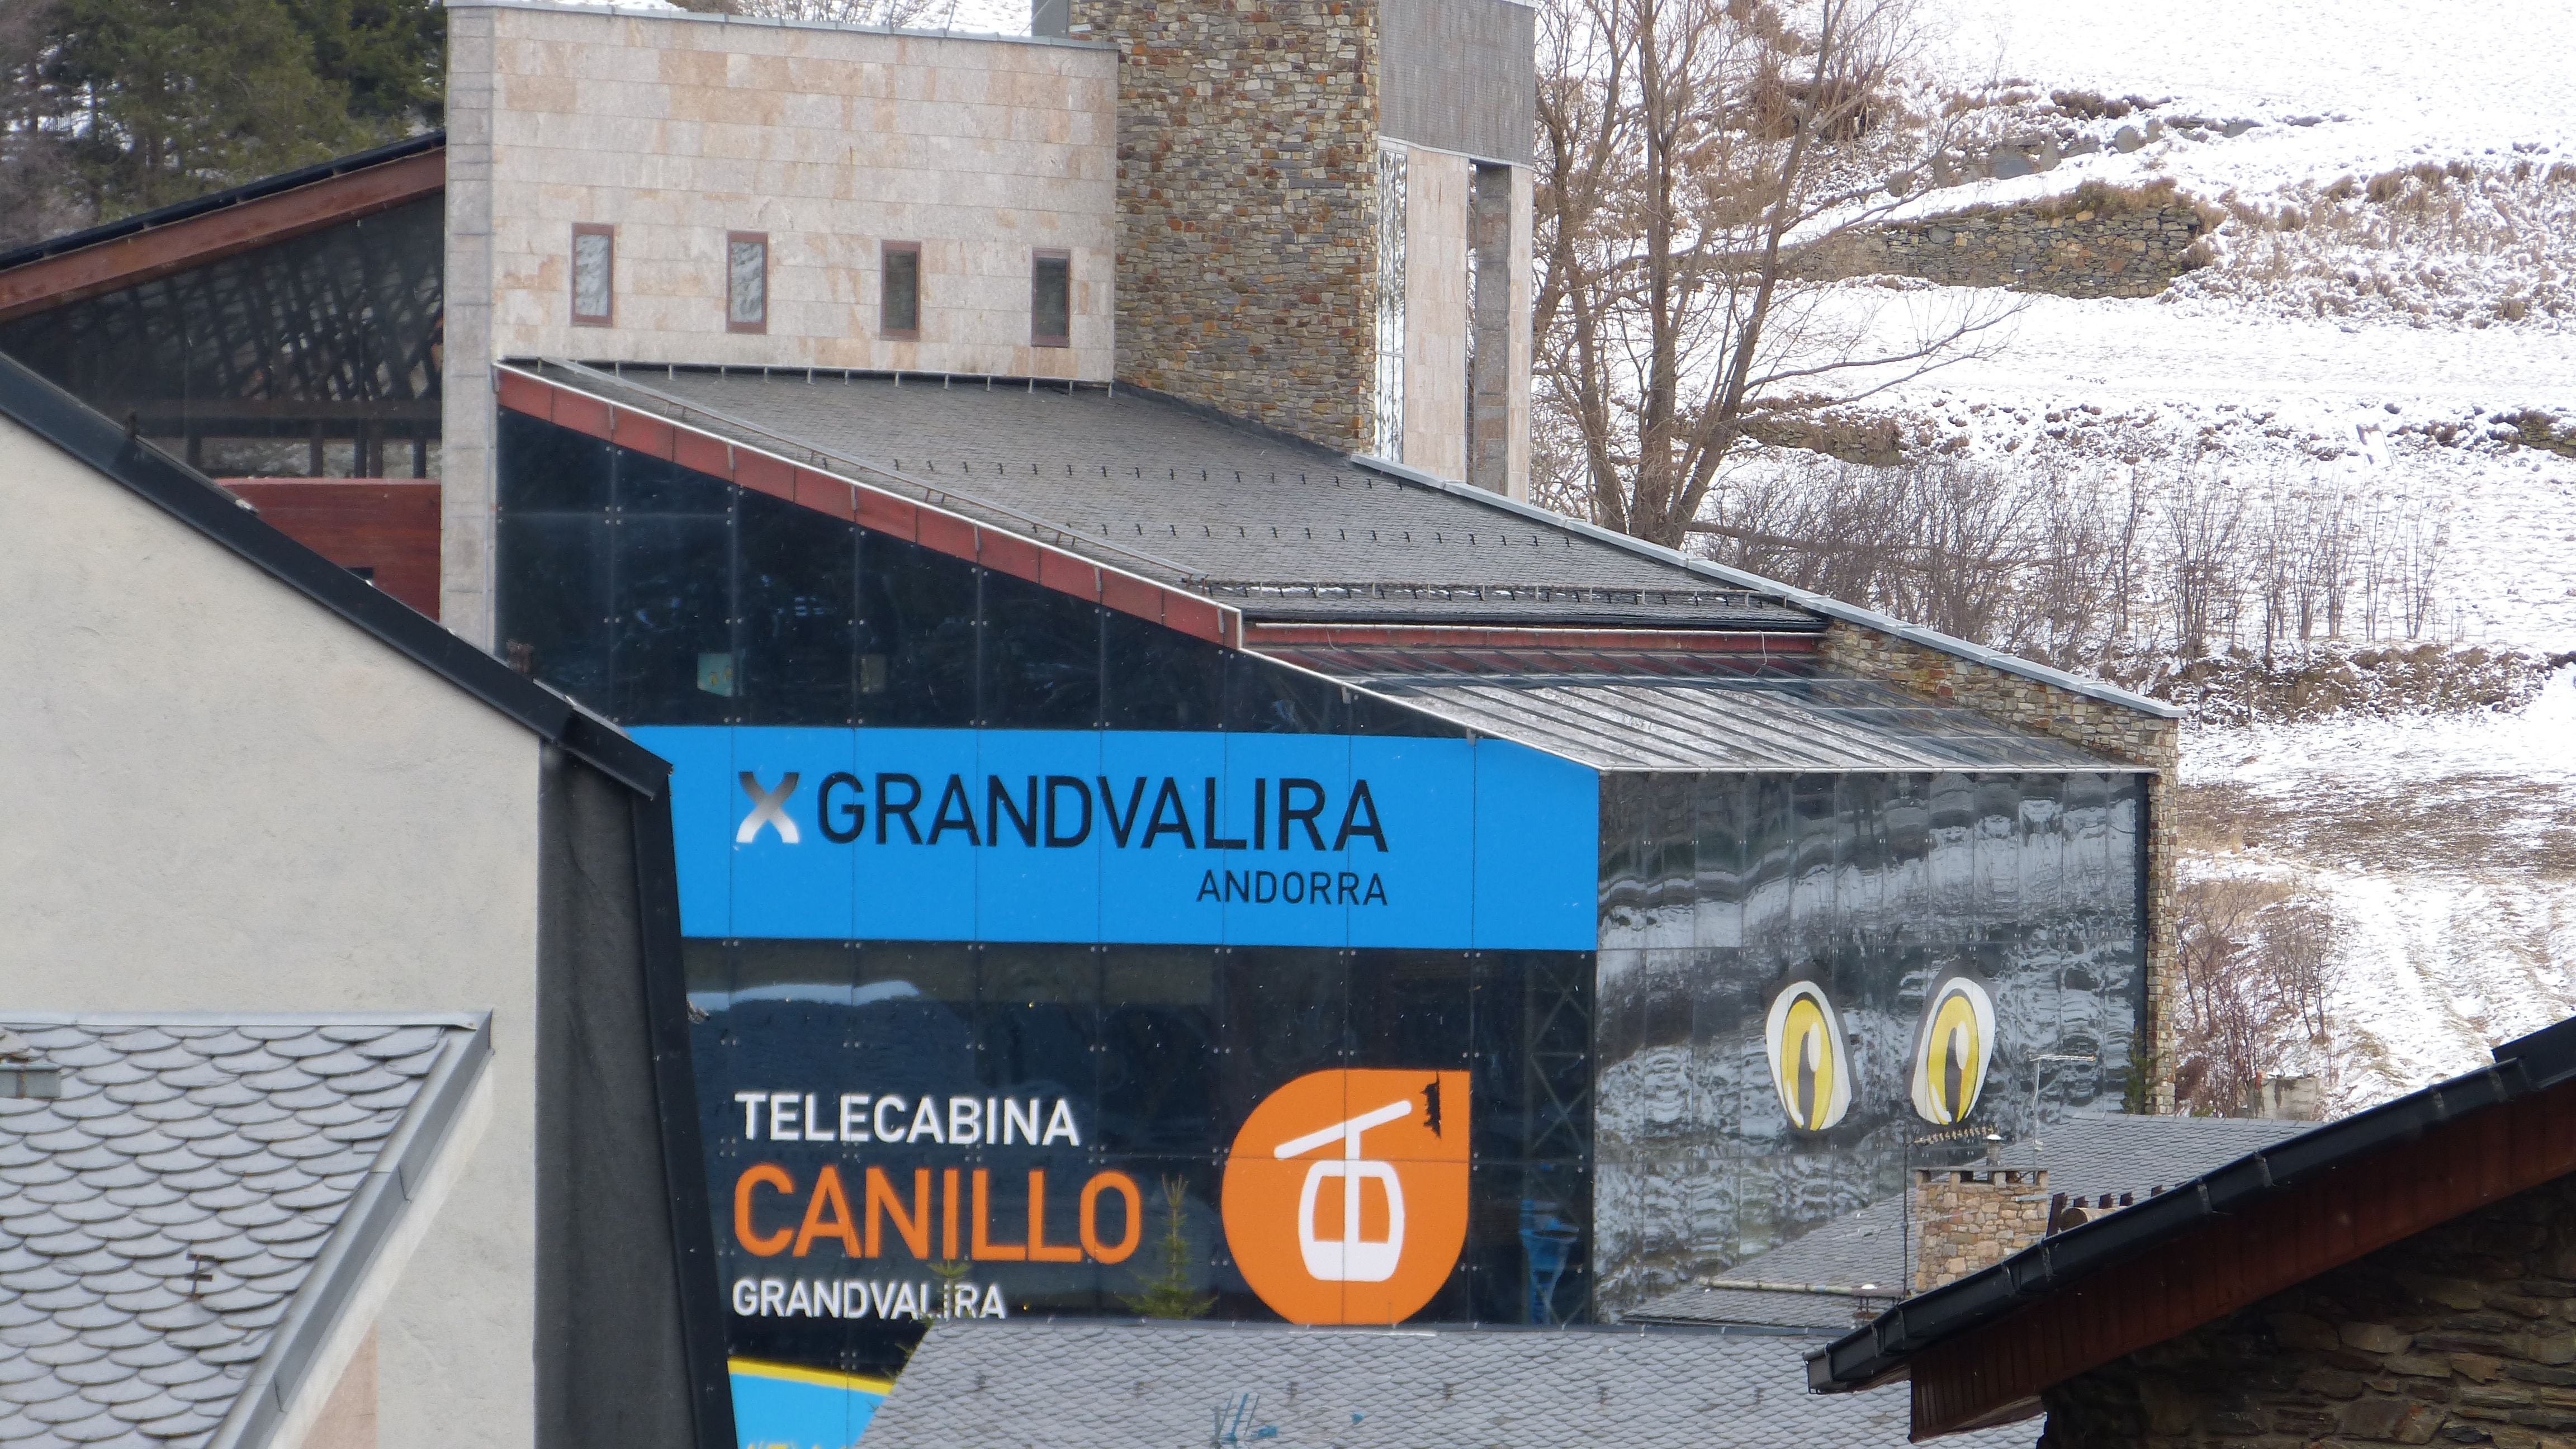 Signage in Telecabina Canillo